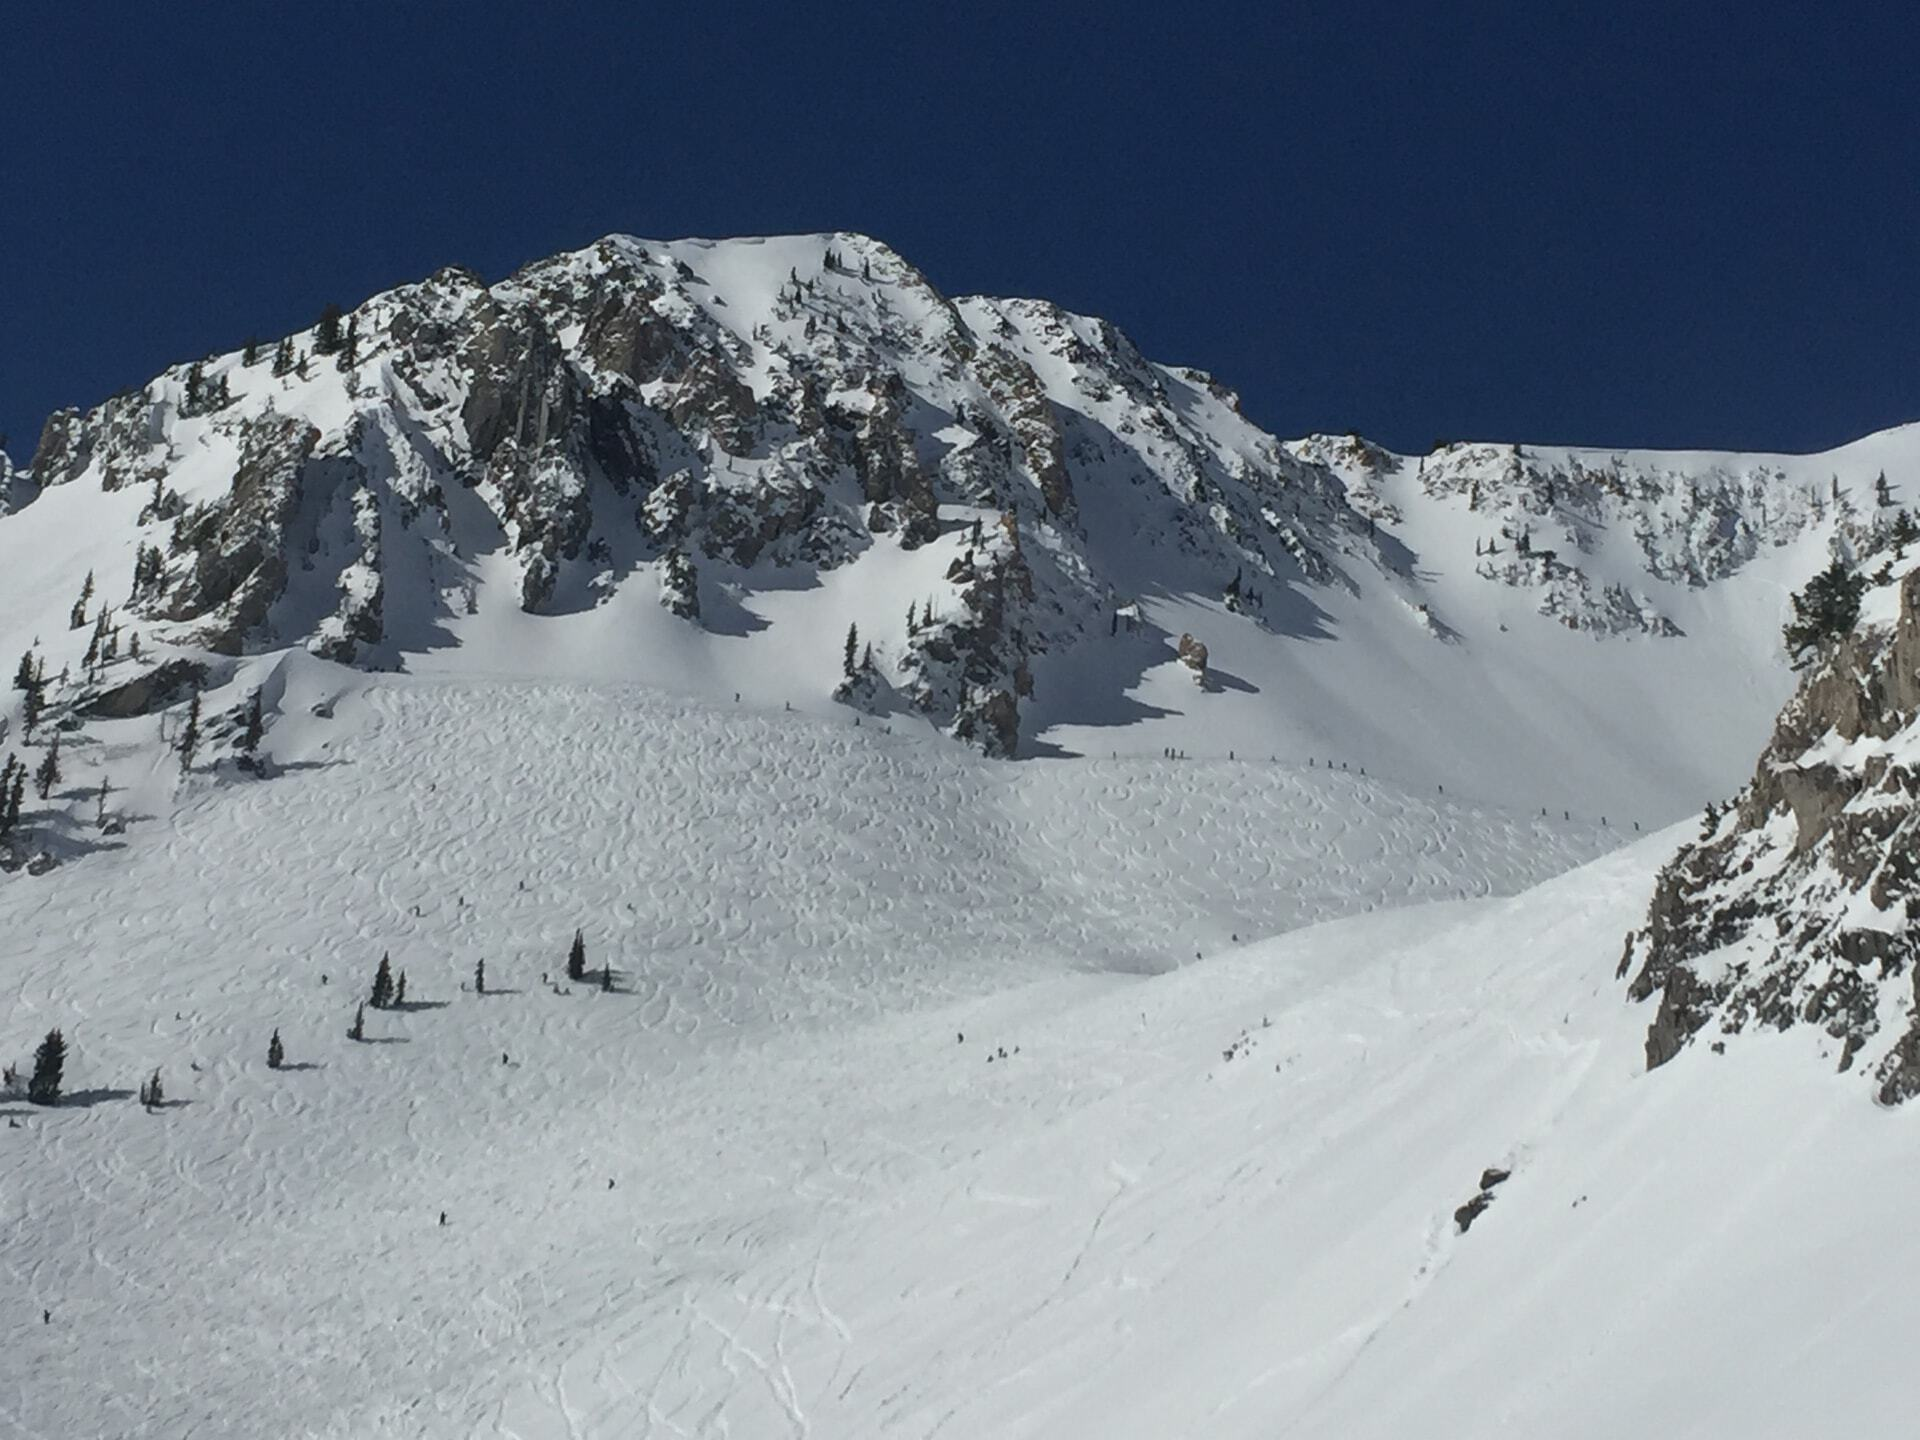 Spring Skiing at Snowbird